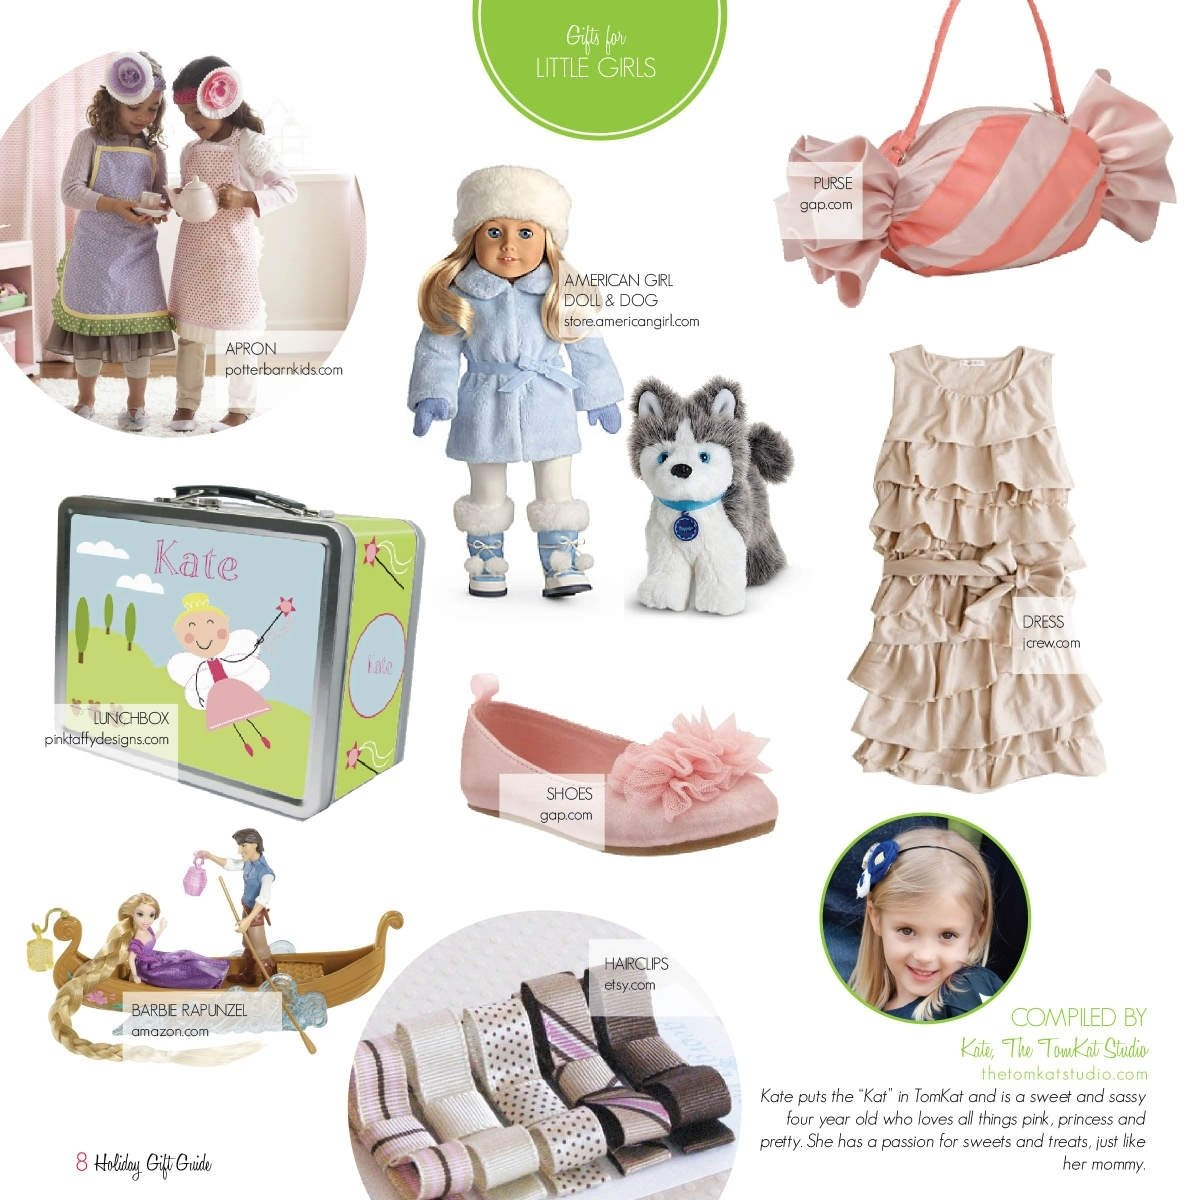 10 Stunning Gift Ideas For Little Girls gifts for little girls good boys cool dads holiday gift guide 1 2020